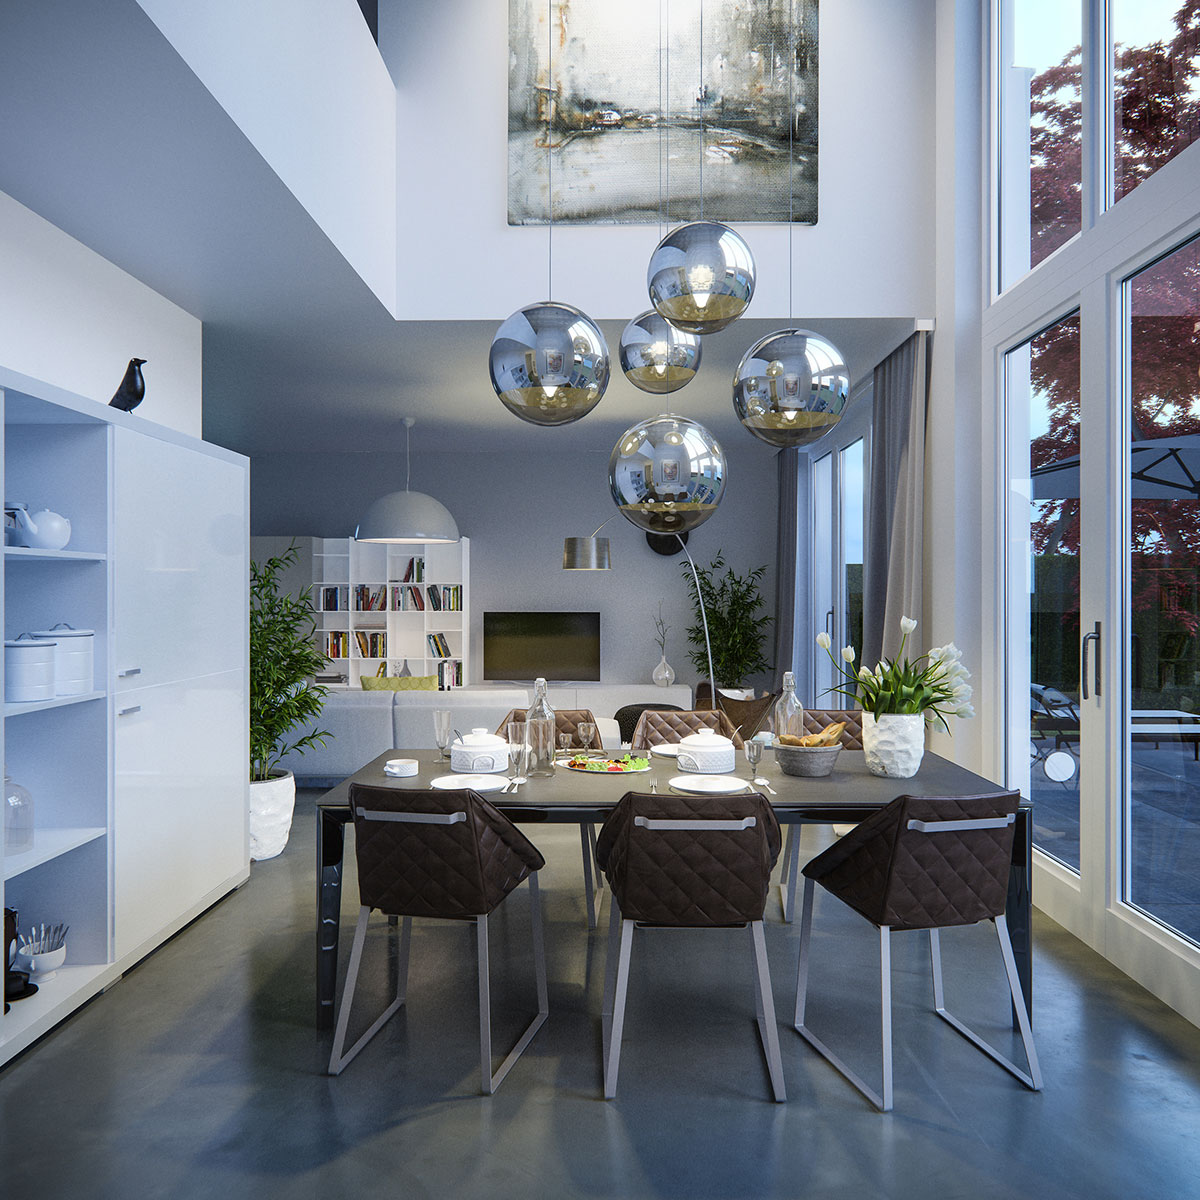 Contemporary dining room night view